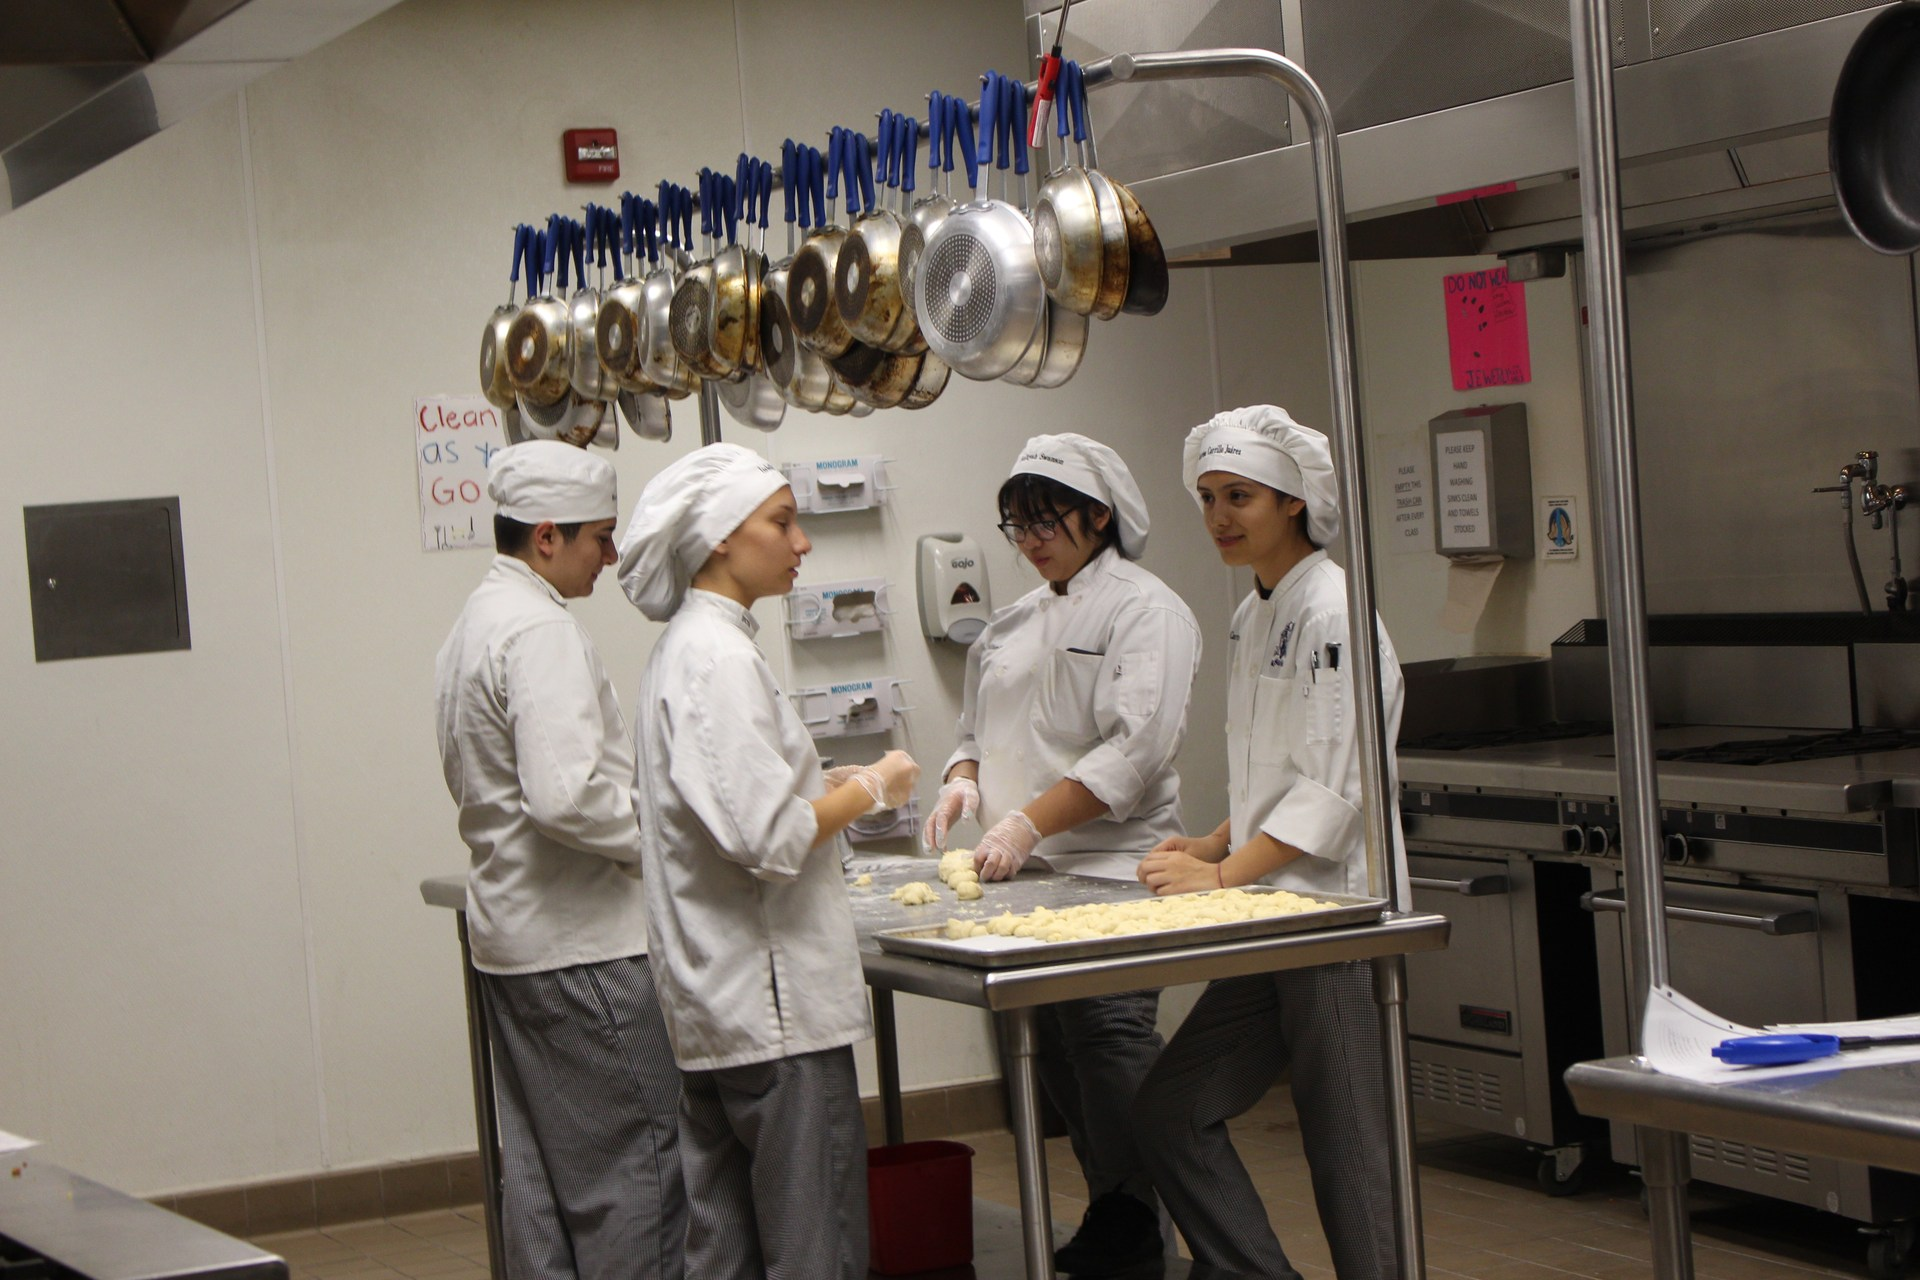 Students working in the kitchen